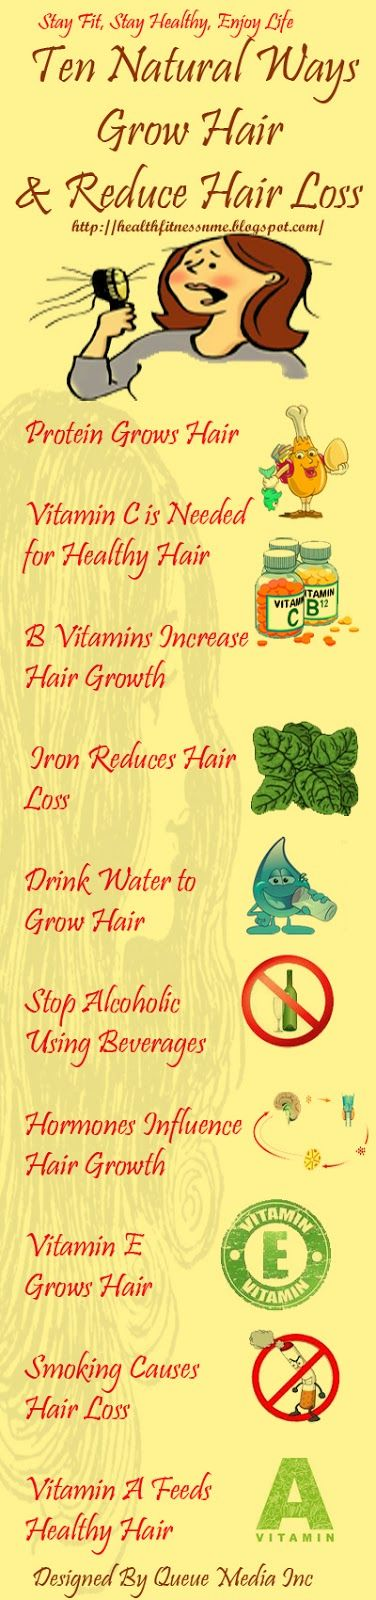 Ten Natural Ways to Grow Hair and Reduce Hair Loss  - for healthy hair supplements visit http://barefoot-me.com